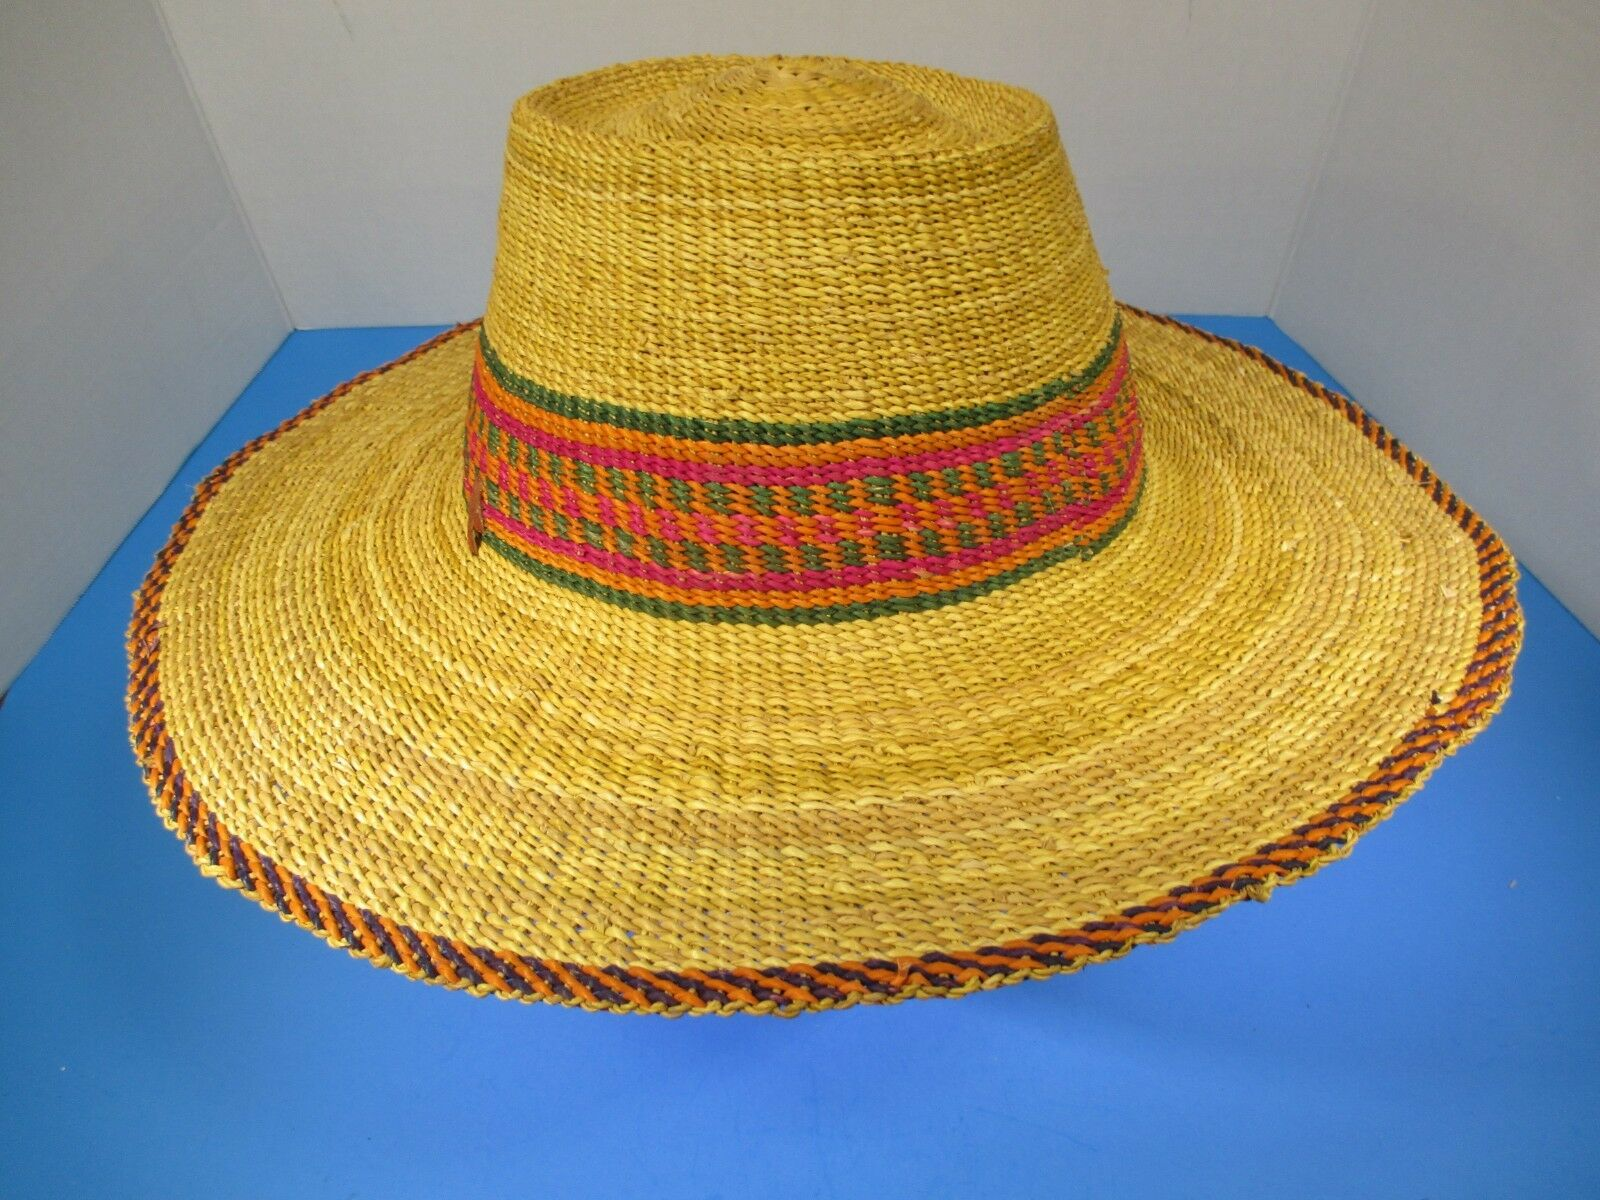 Authentic Hand Woven Argentinean Colorful Wide Brim Straw Garden Hat Ghana #58